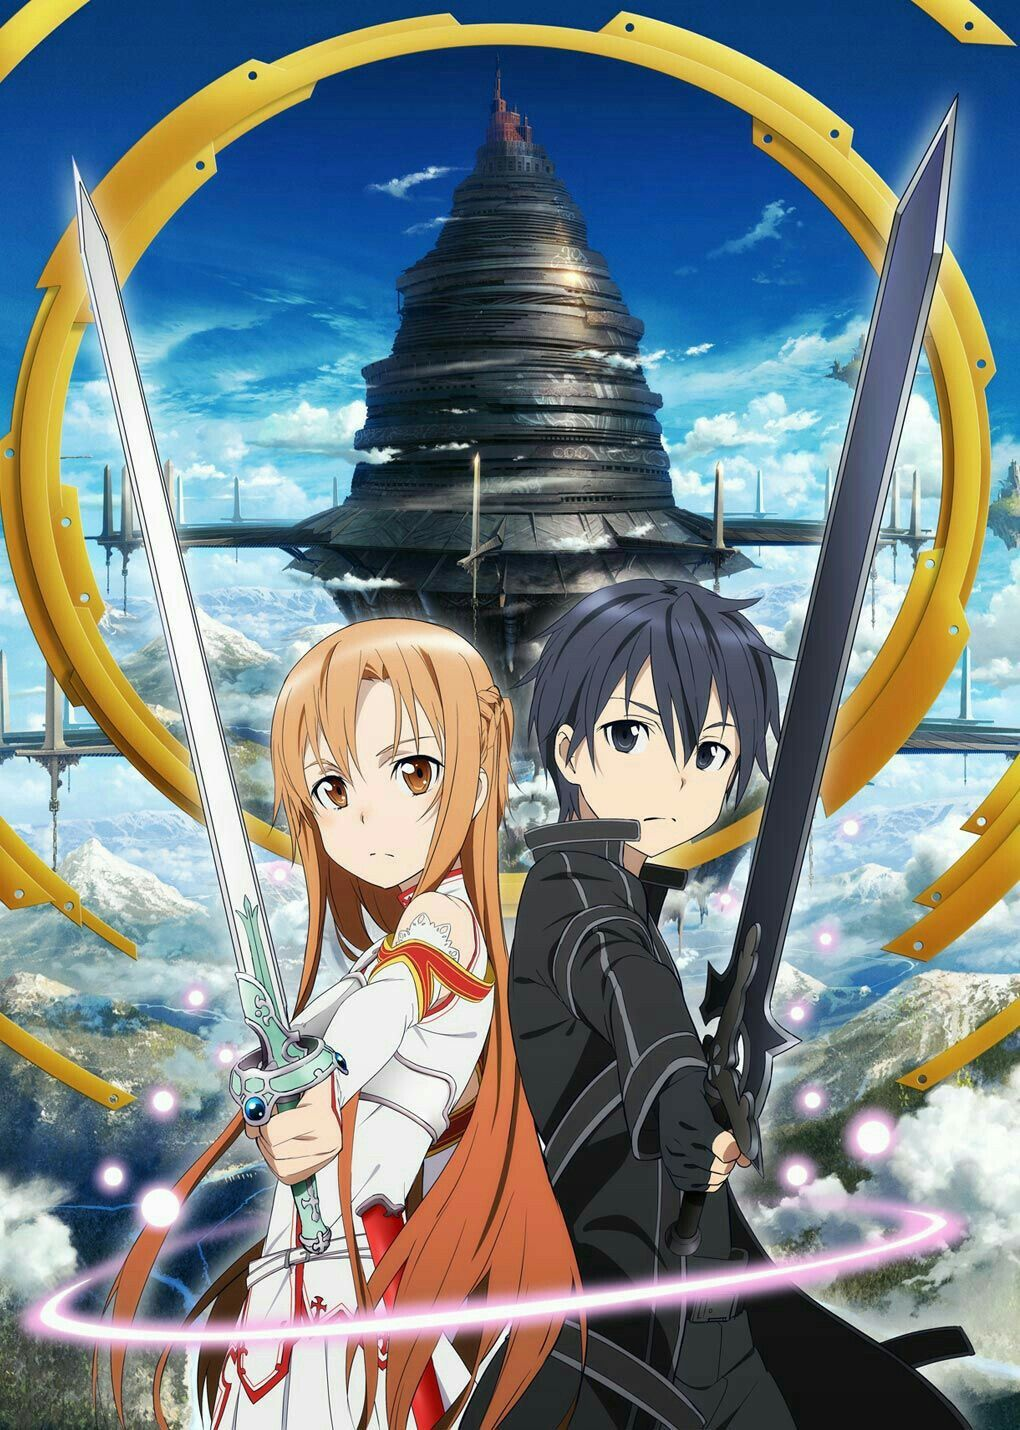 Sword art online season image by Afif on Sword Art Online